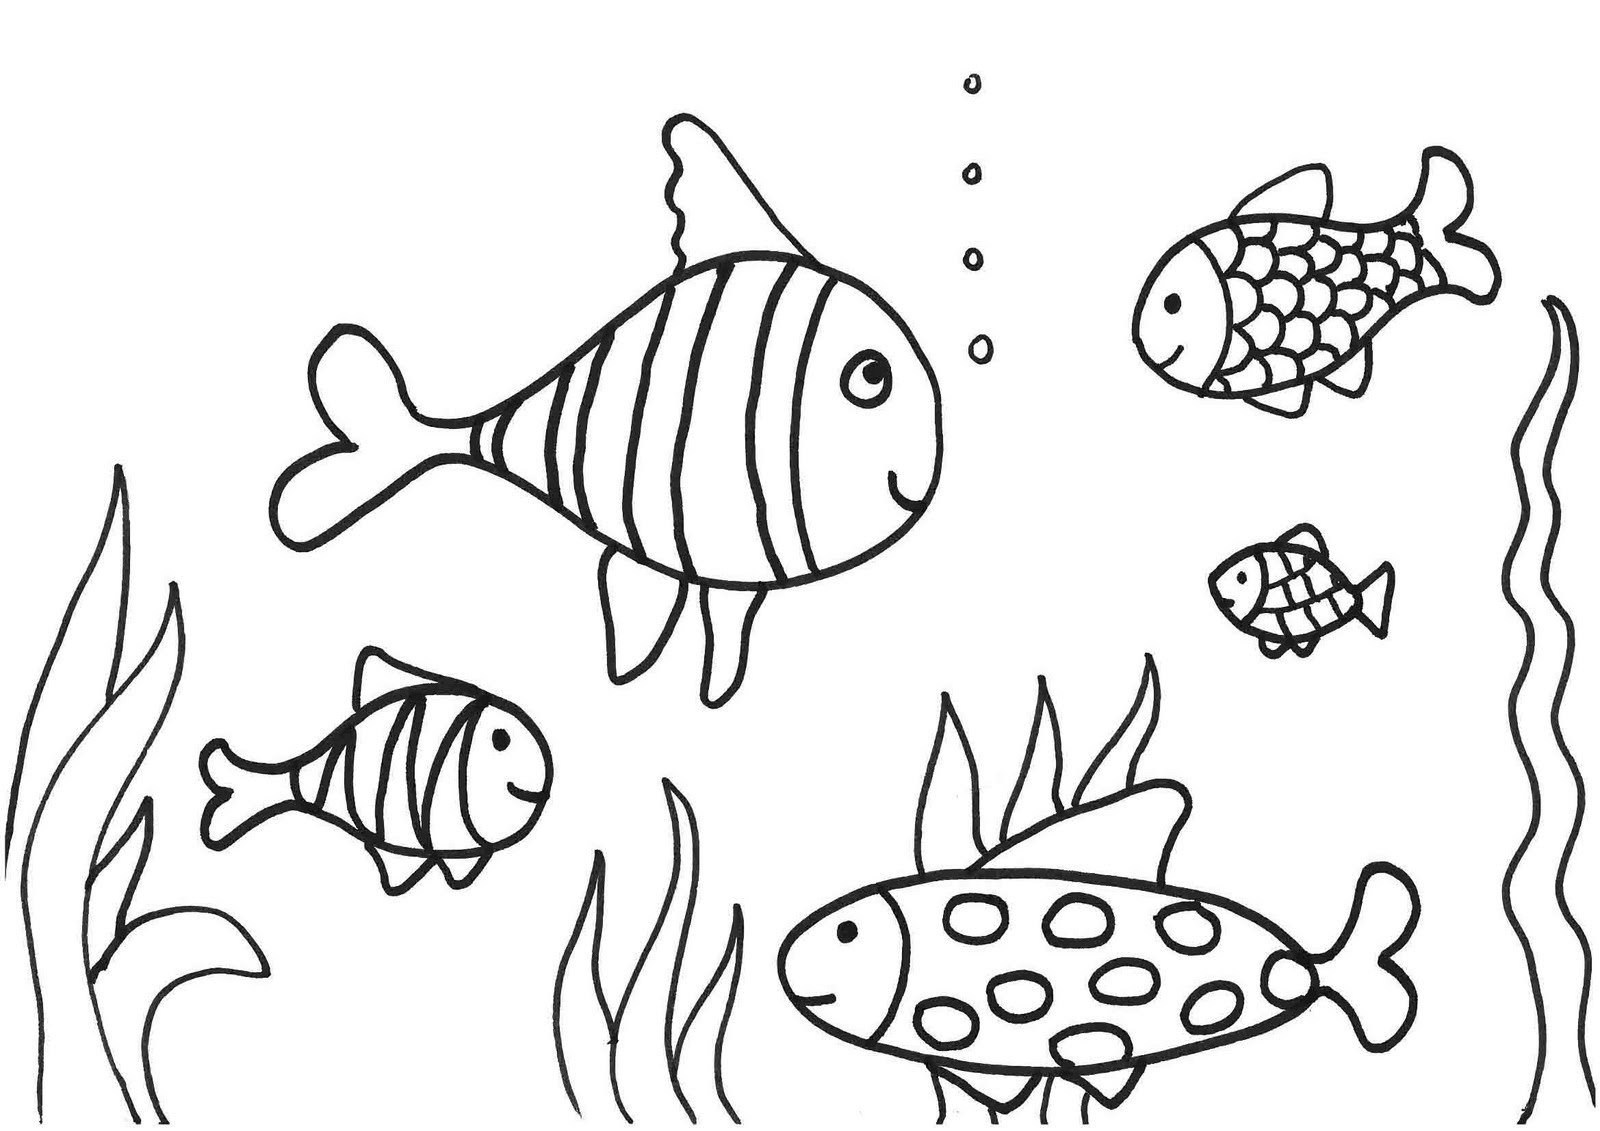 Colouring Pictures For Grade 1 Coloring Activities For Grade 1